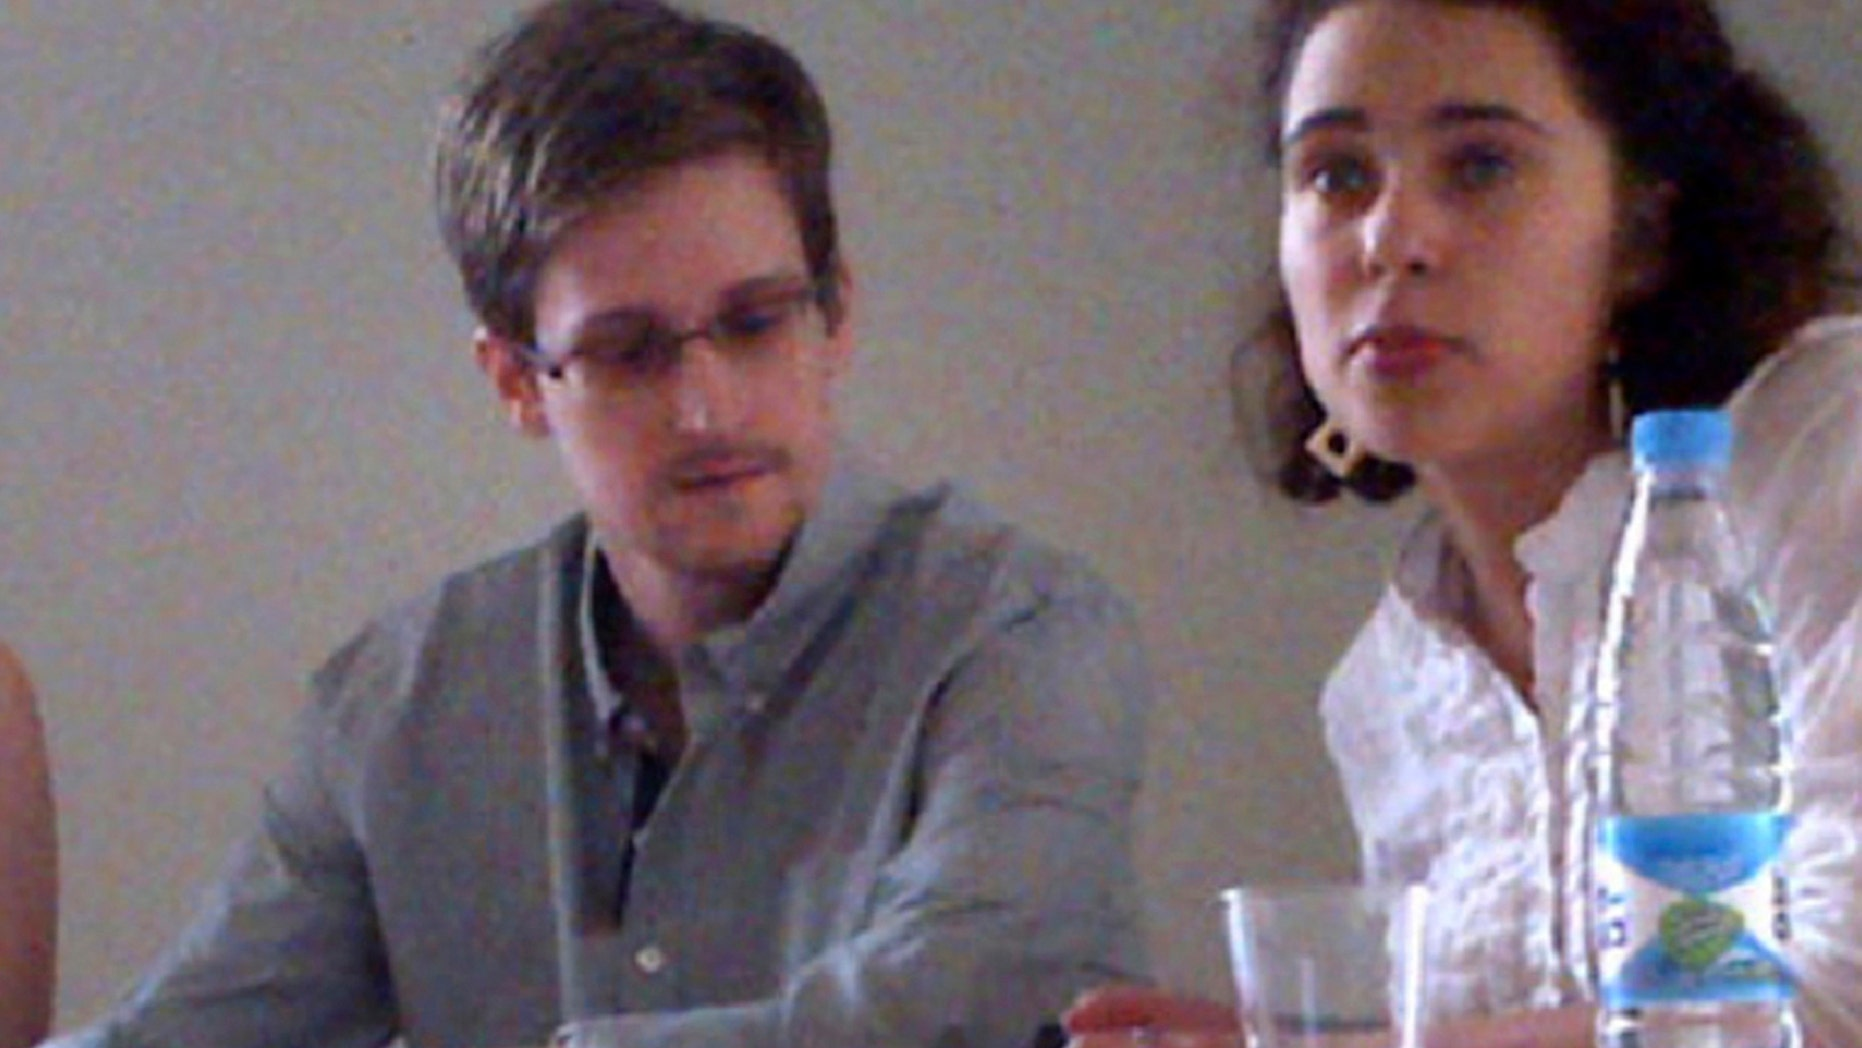 NSA leaker Edward Snowden attends a news conference at Moscow's Sheremetyevo Airport with Sarah Harrison of WikiLeaks, left, Friday, July 12, 2013.